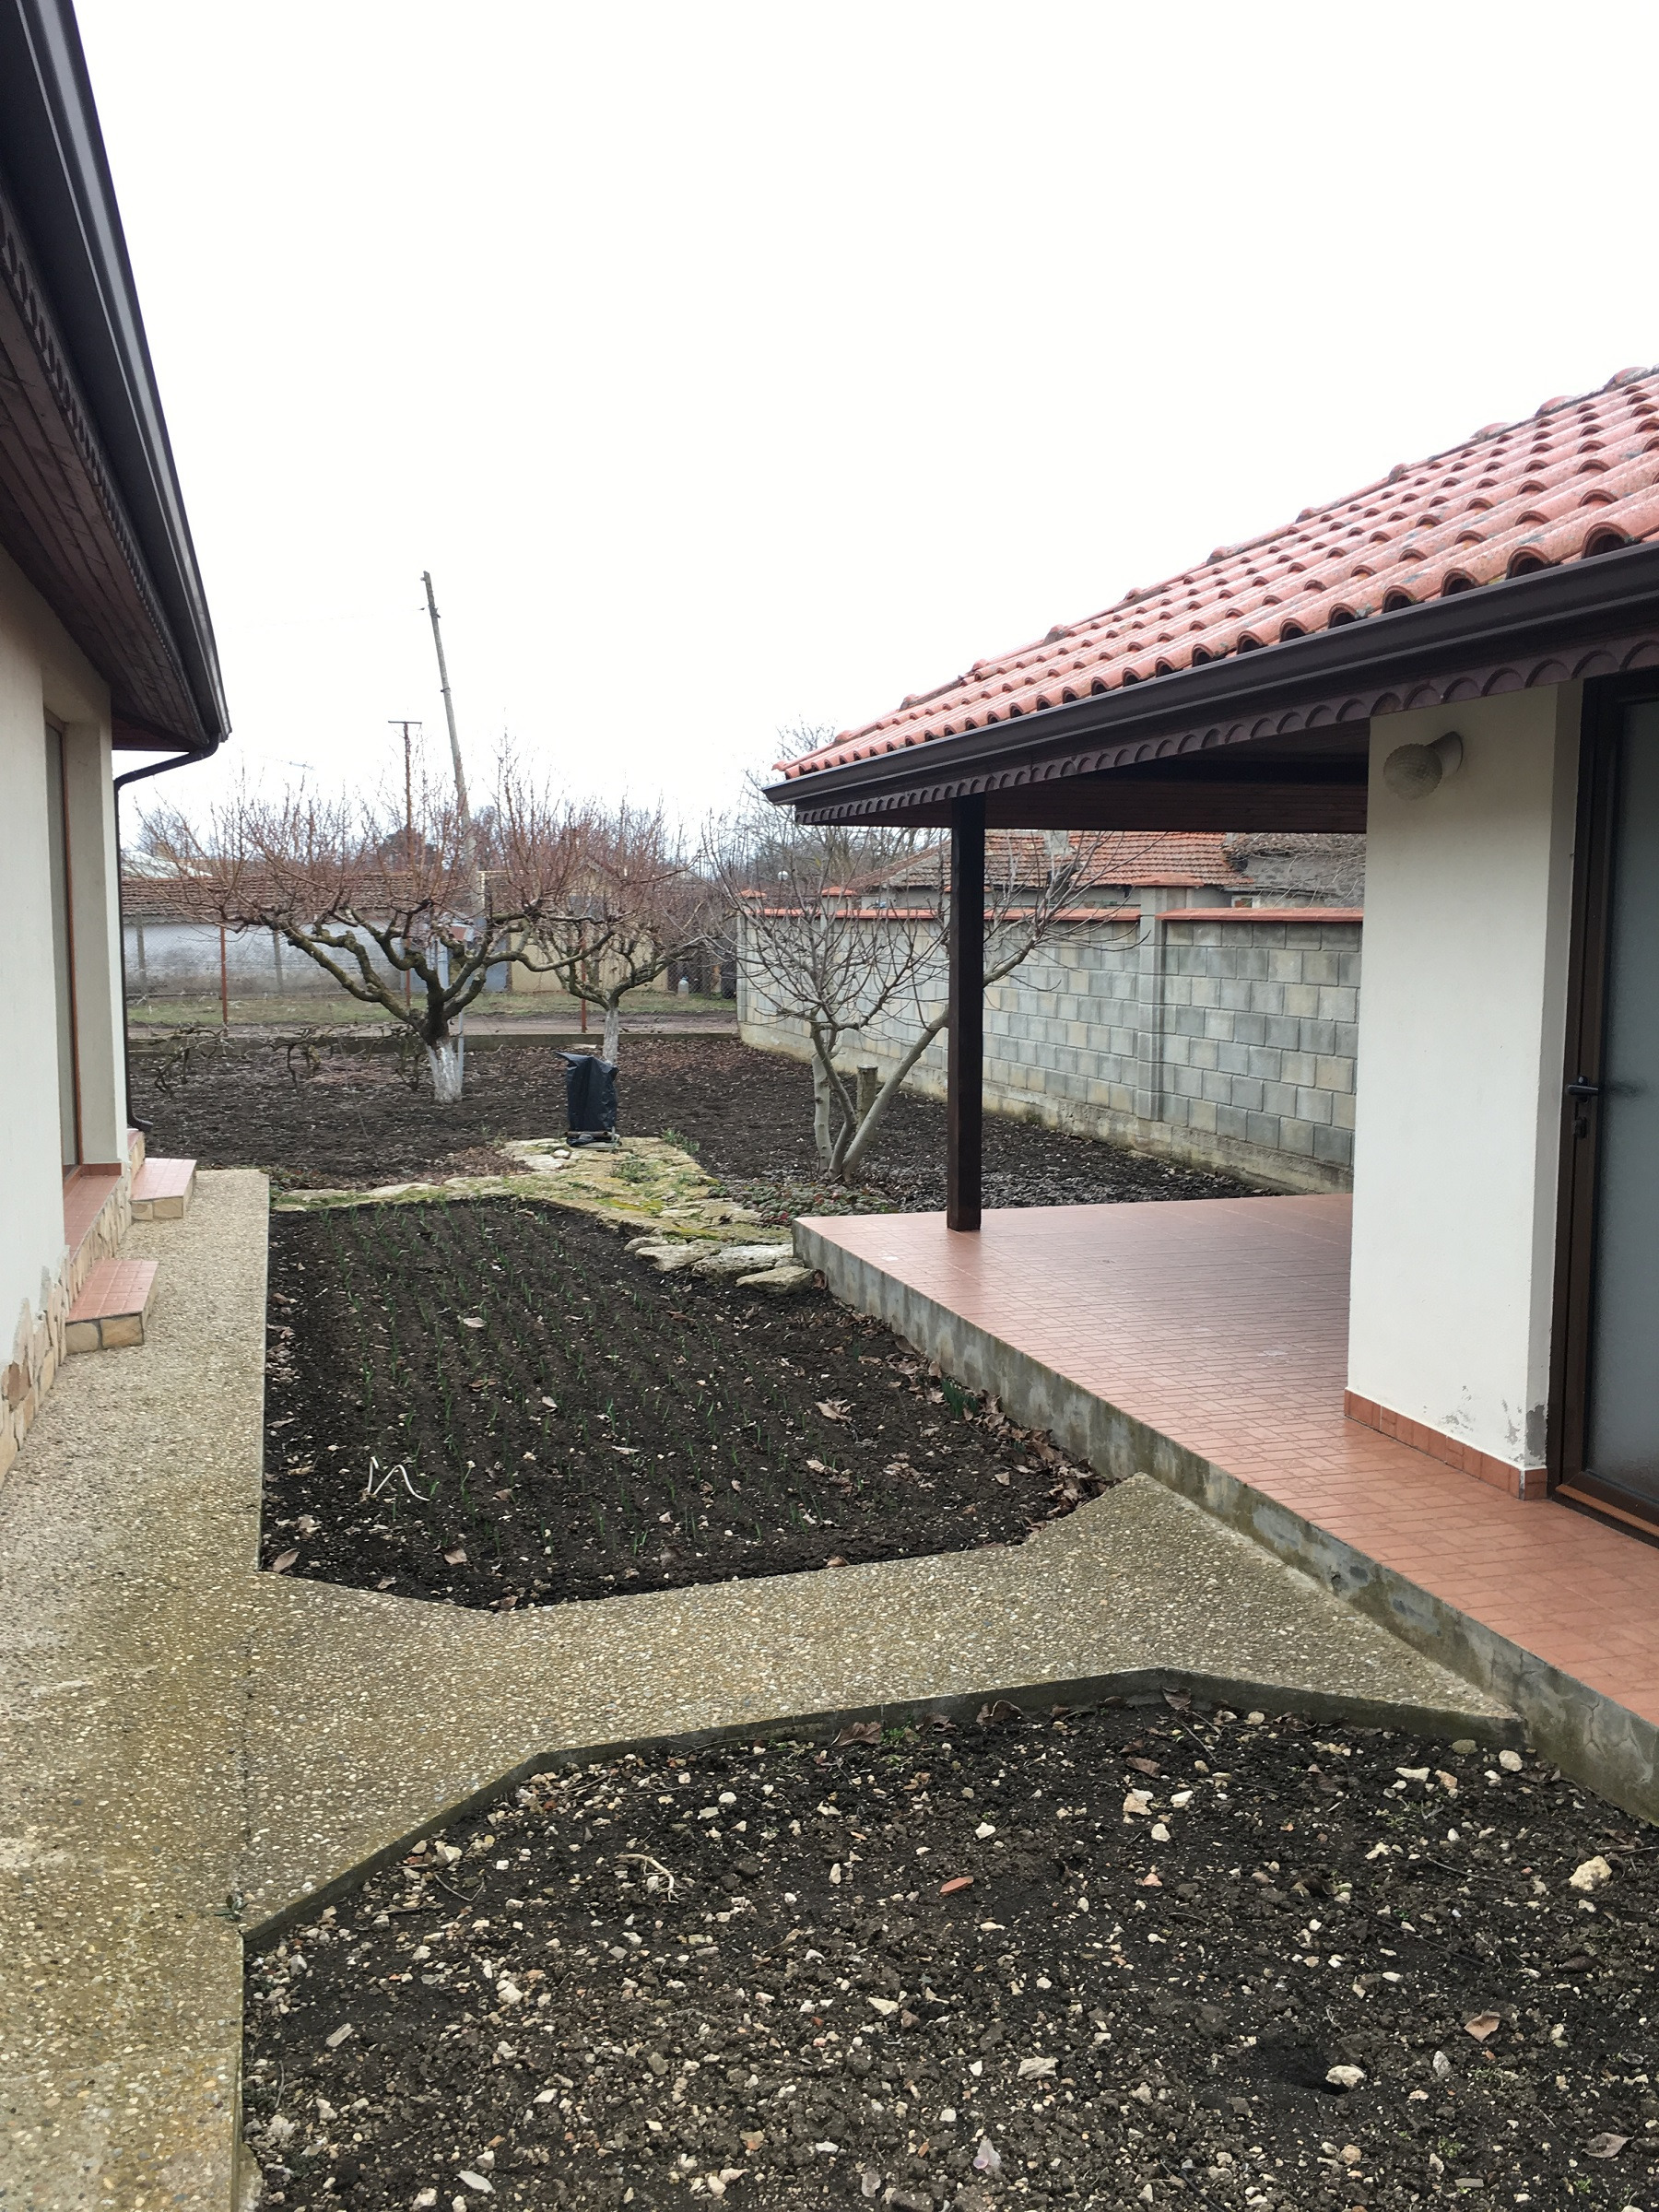 Build A House for Under 100k Awesome House In Mogiliste Bulgaria Dobrich Mogiliste Property